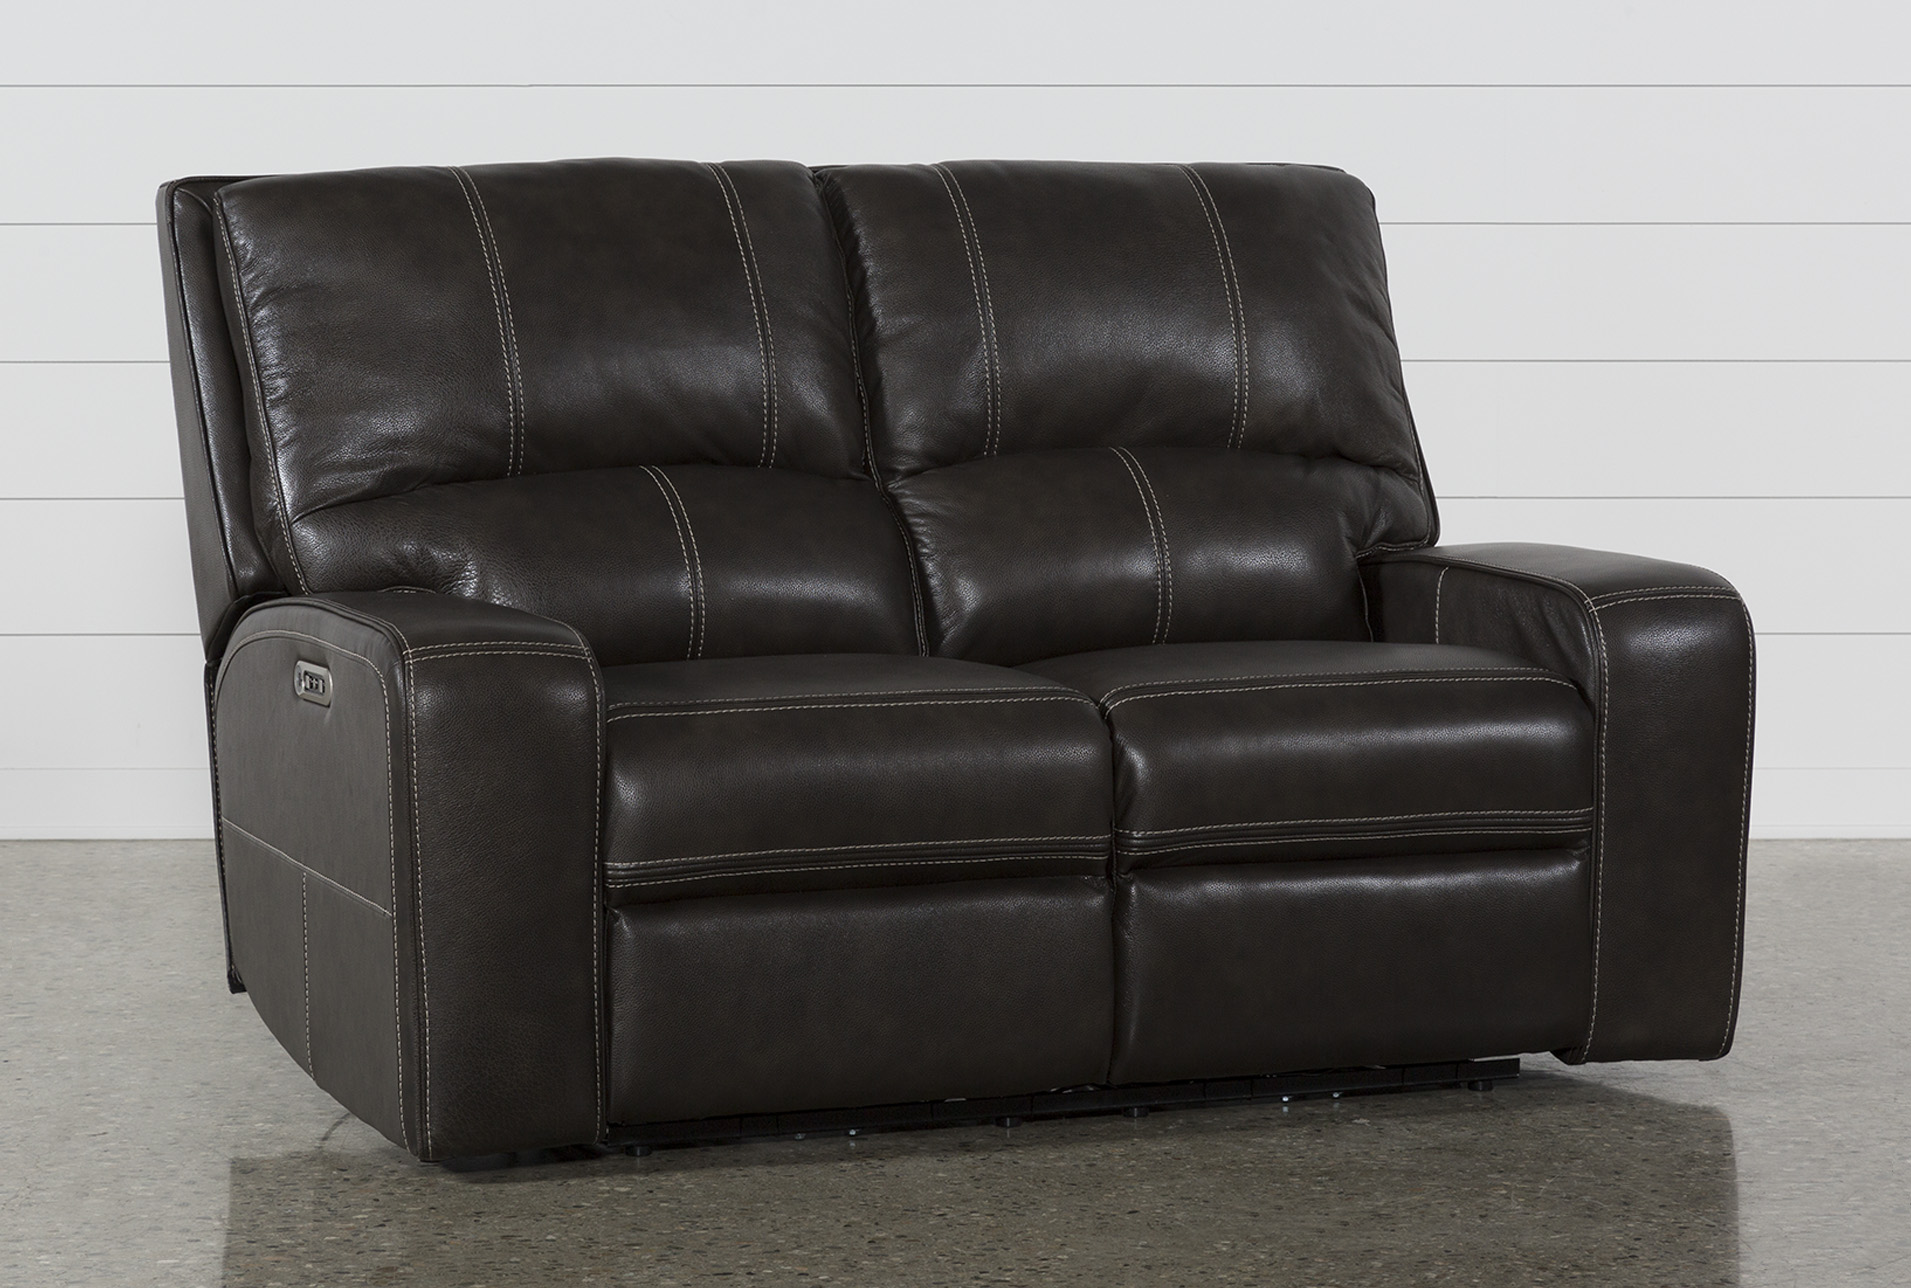 Clyde Grey Leather Power Reclining Loveseat W/Power Headrest & Usb  (Qty: 1) has been successfully added to your Cart.